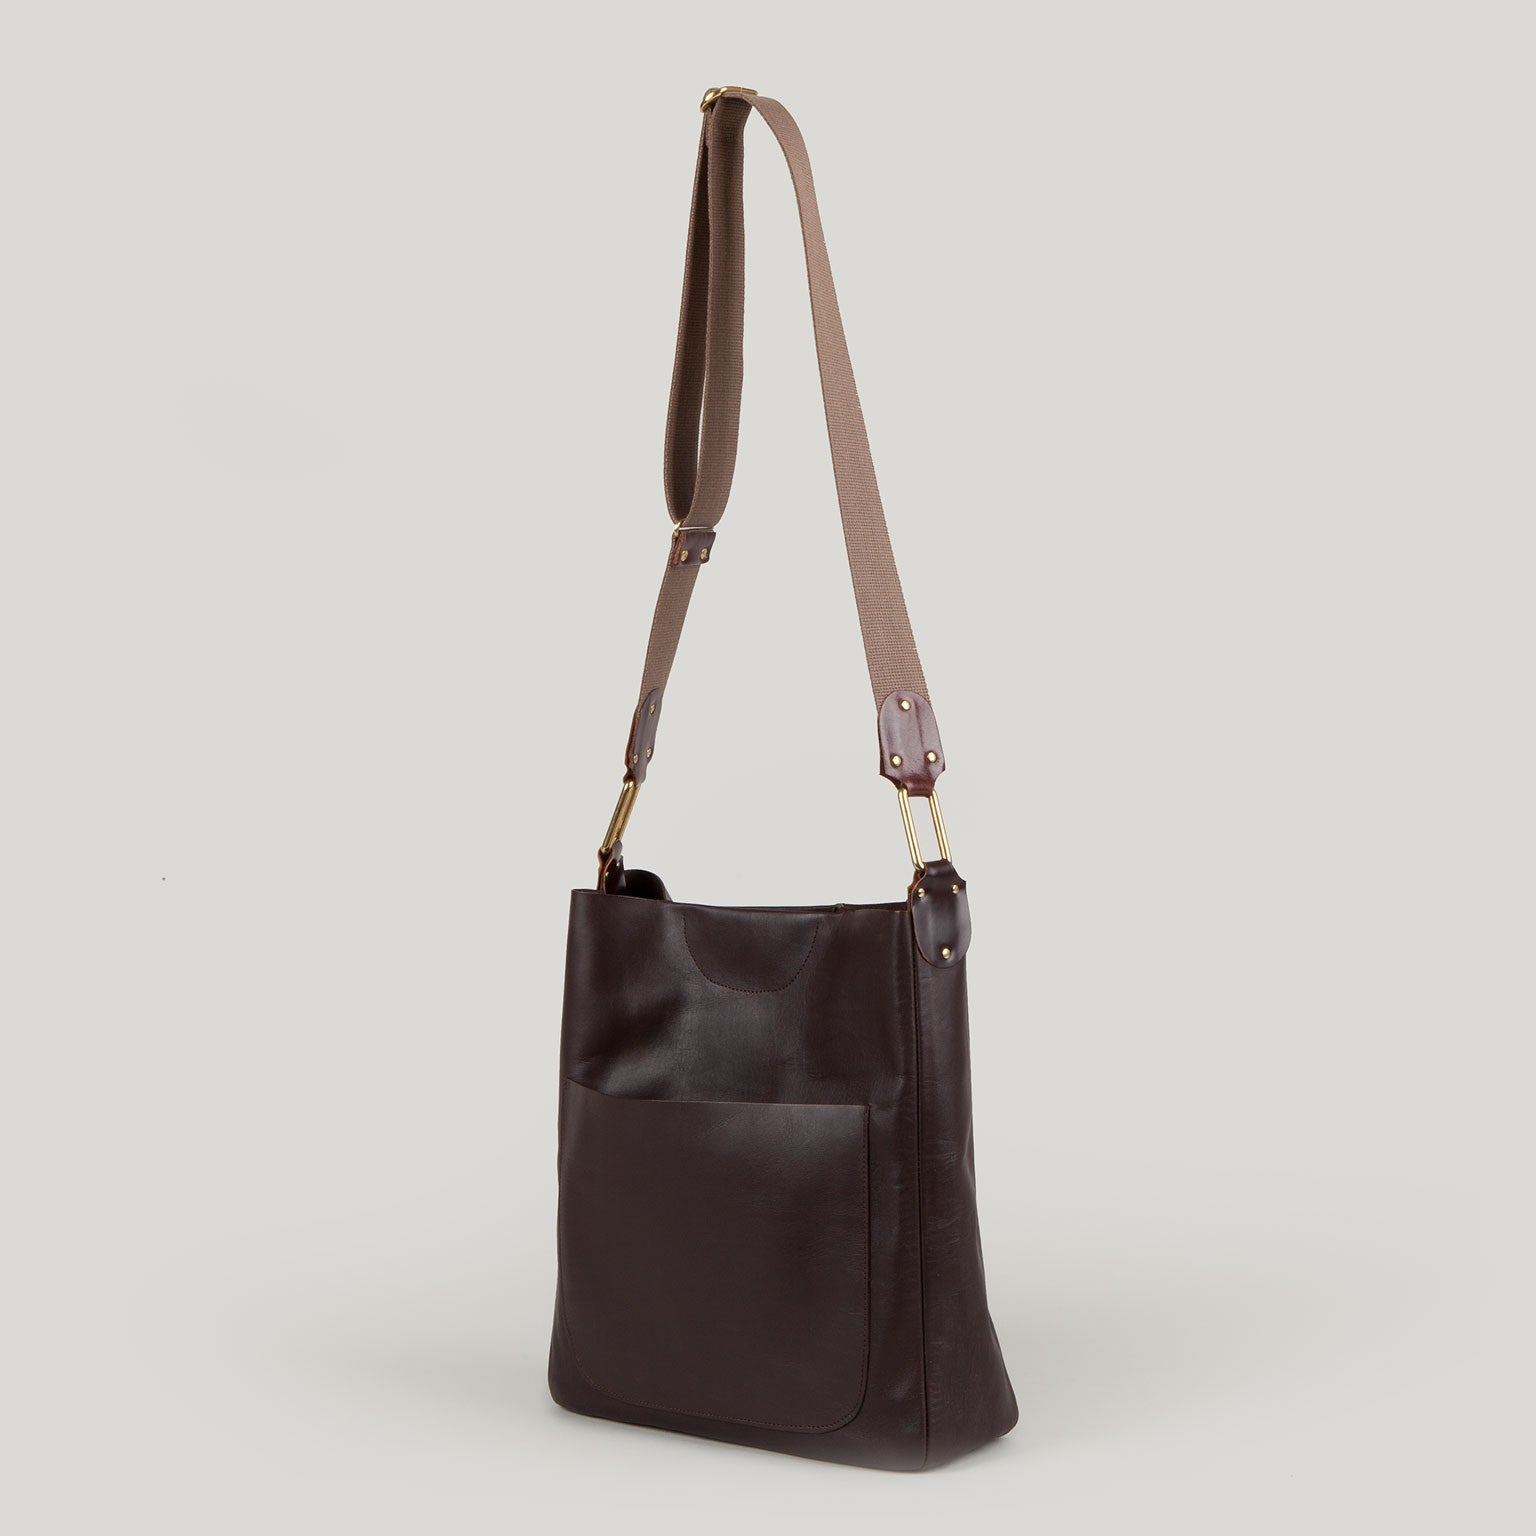 CELESTE <br/> Calf Skin Shoulder Bag <br/> Chestnut